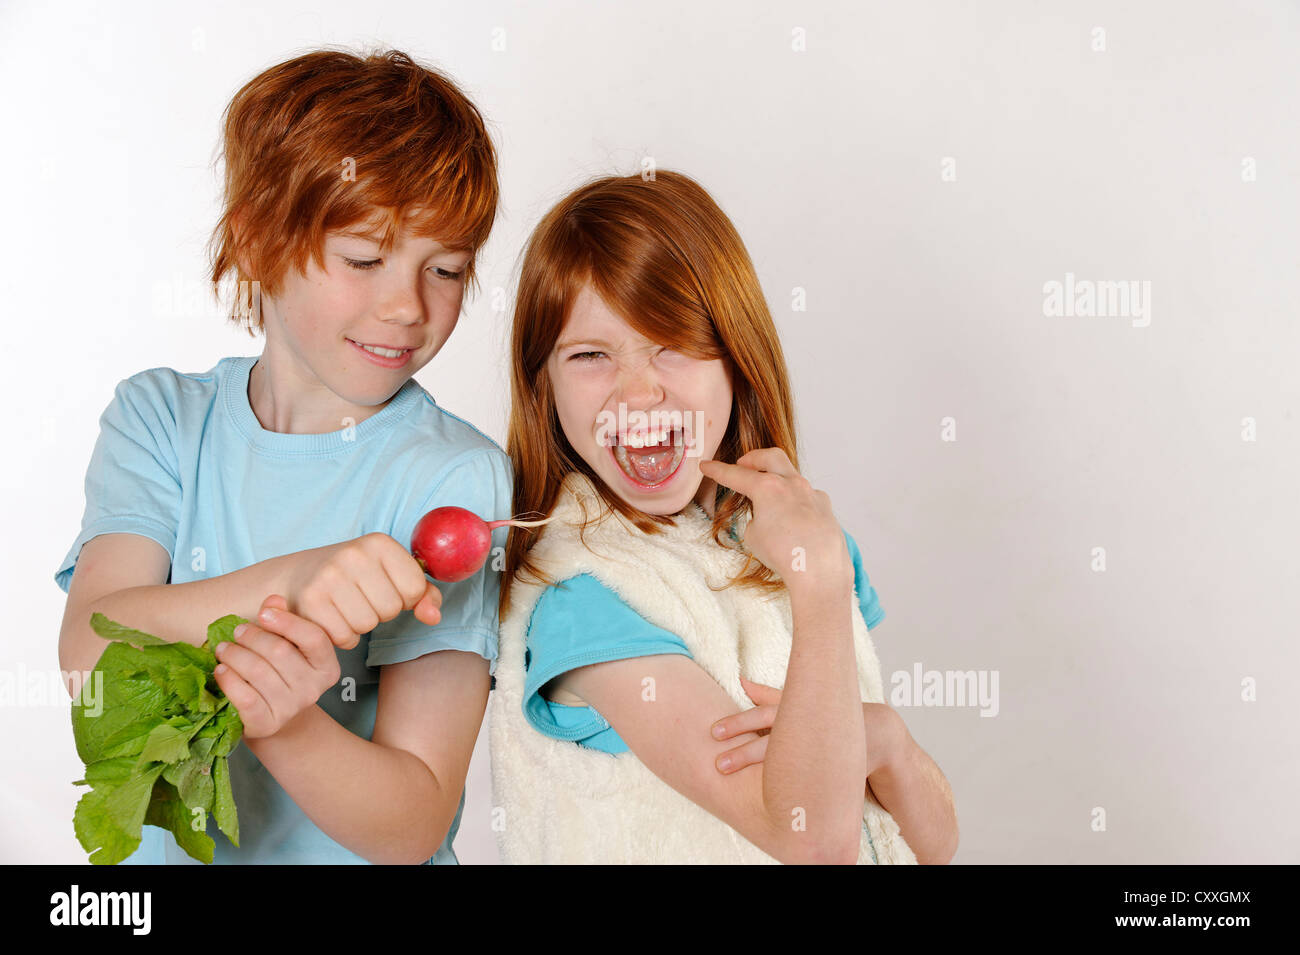 Funny Kids Pictures Stock Photos Amp Funny Kids Pictures